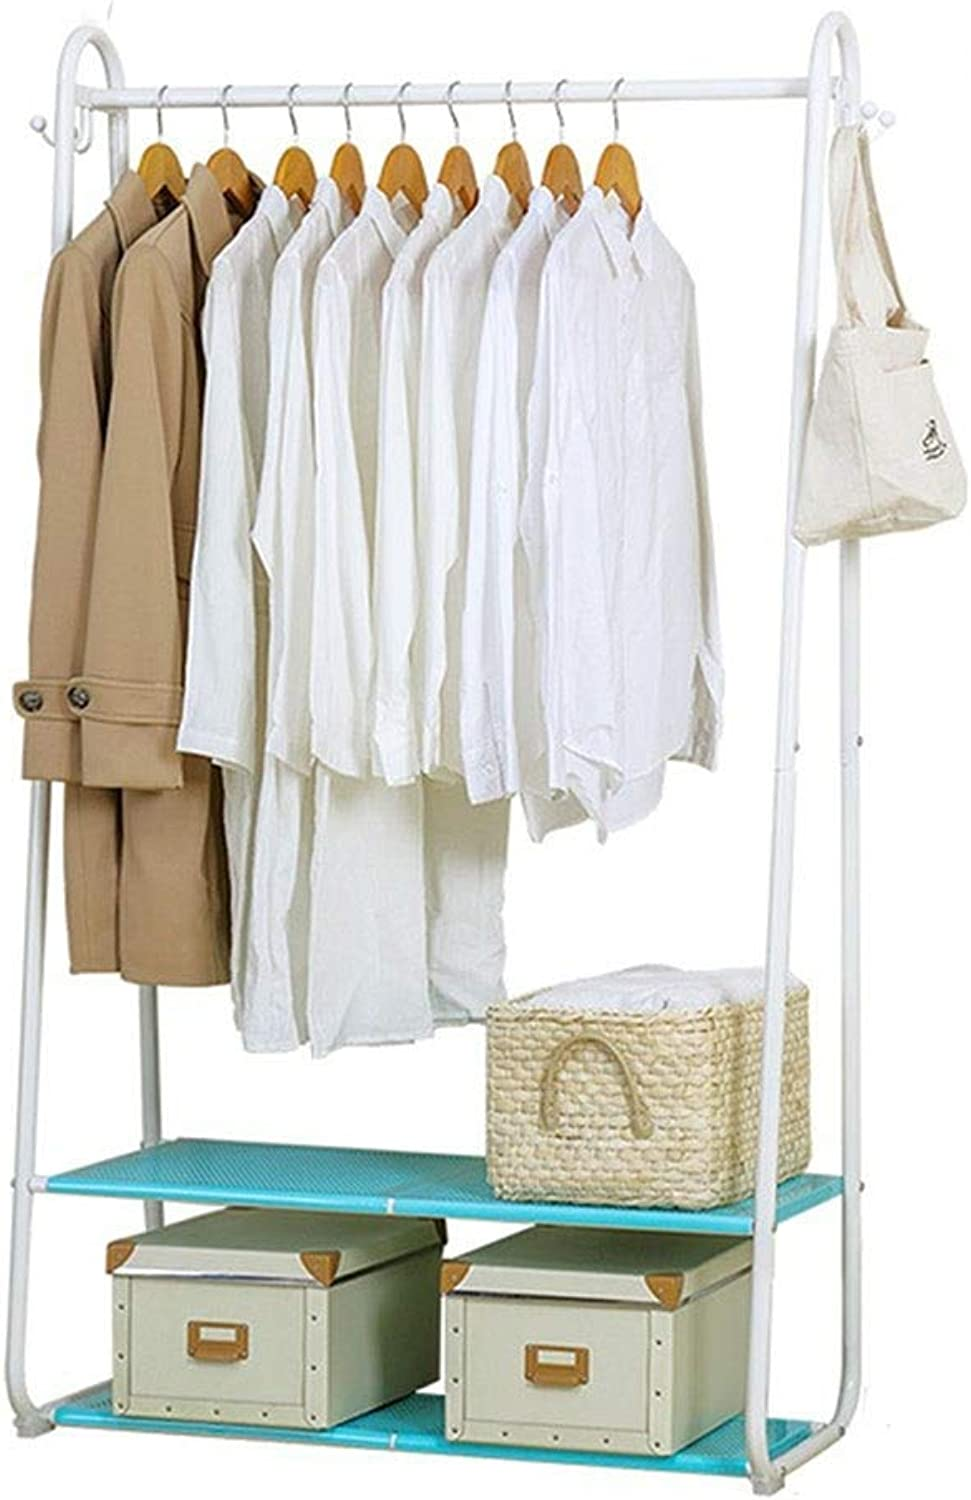 Yalztc-zyq16 Hanger Indoor Bedroom Simple Modern Hall Clothes Shelves Put Something Landing Drying Racks